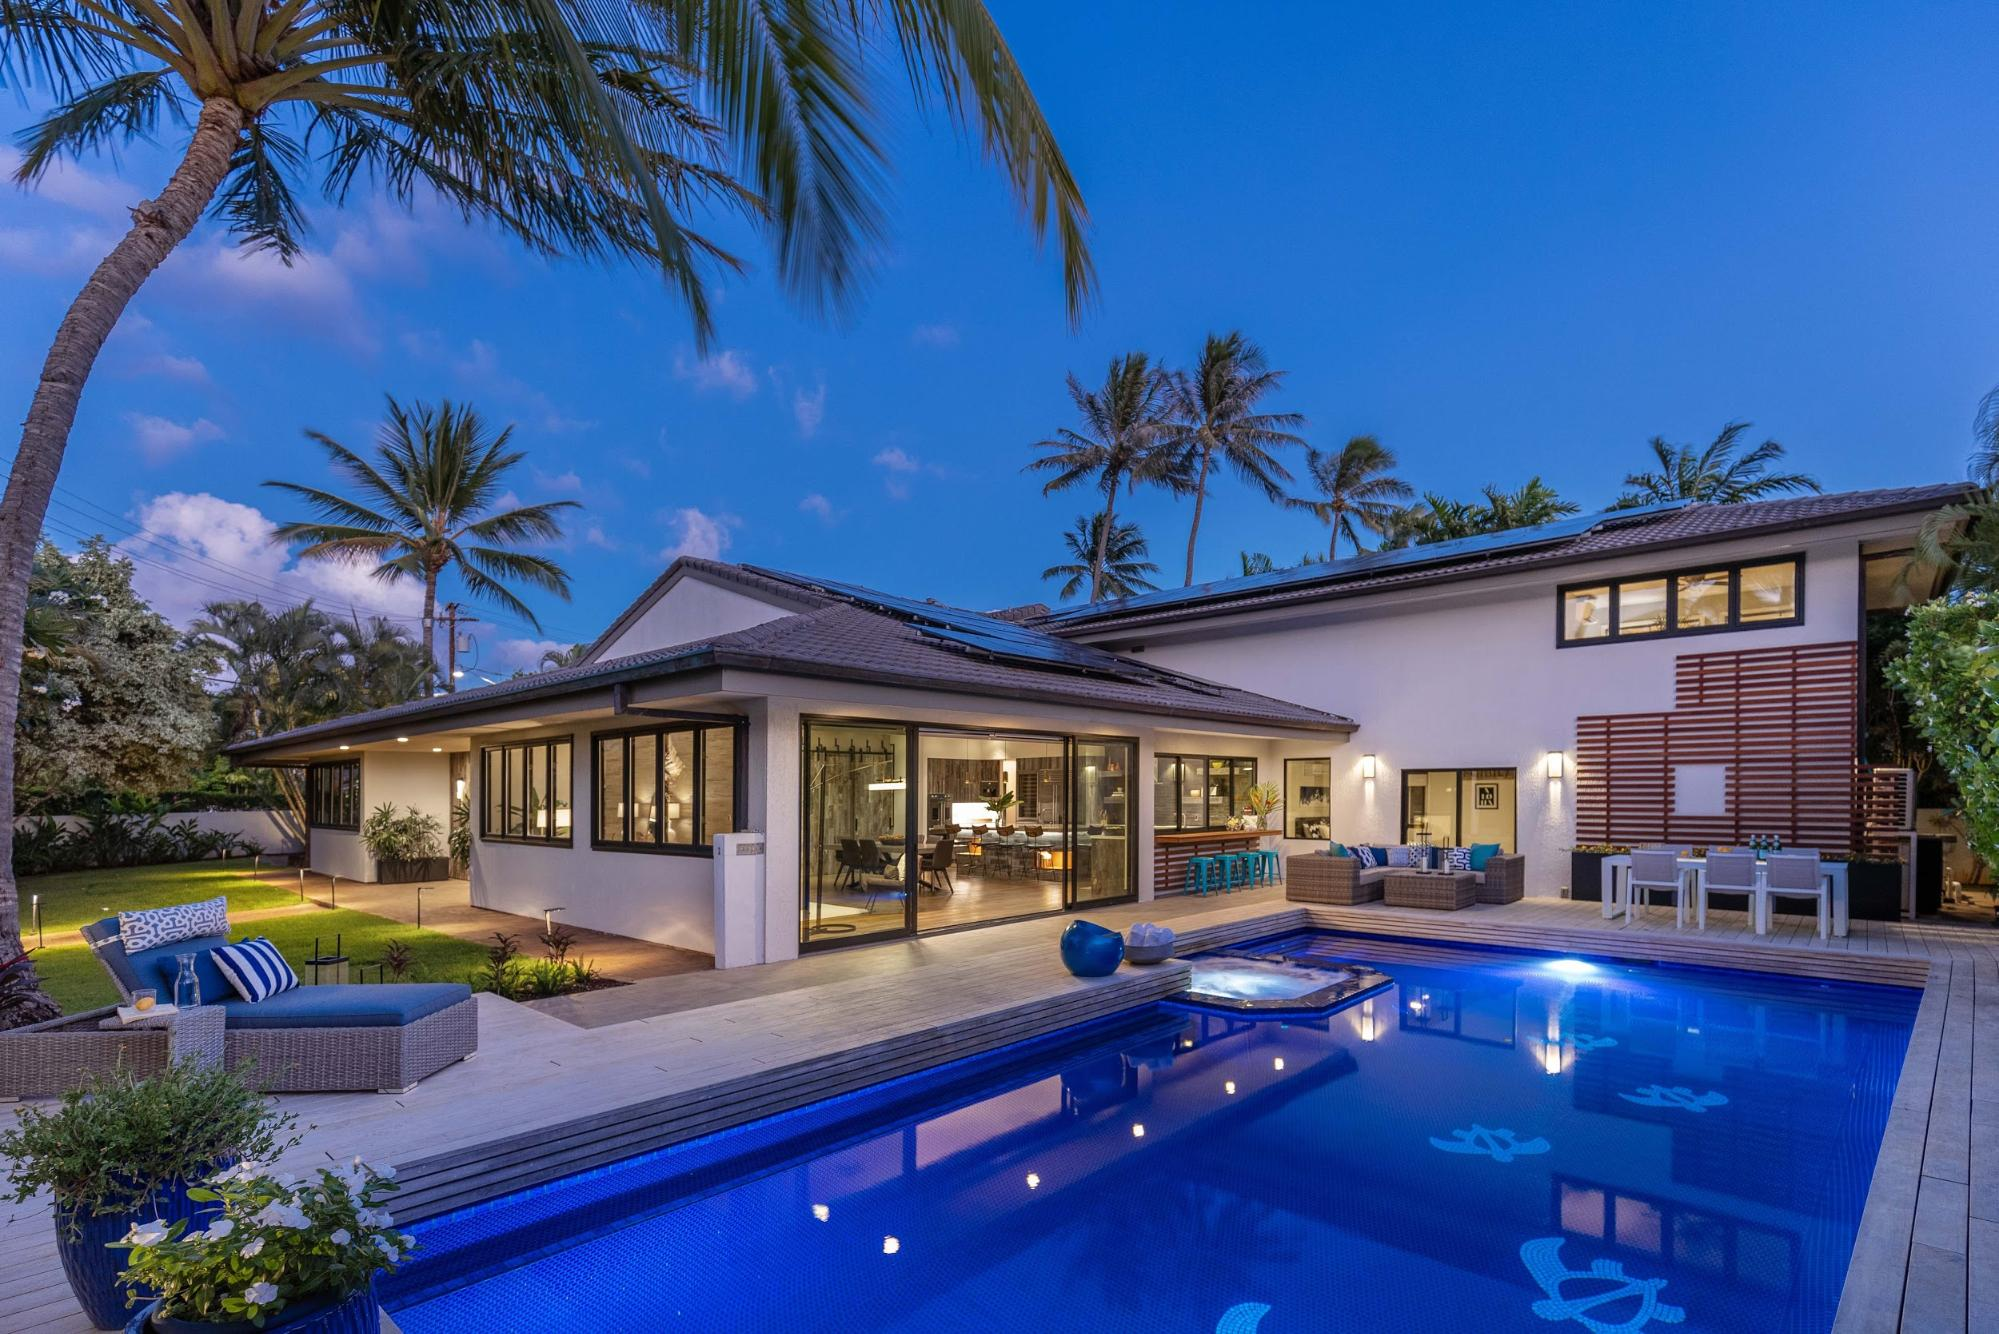 A view of a home in Kahala from the exterior. The visibile portion of the home includes a pool, pool furniture, large windows, and lots of greenery.